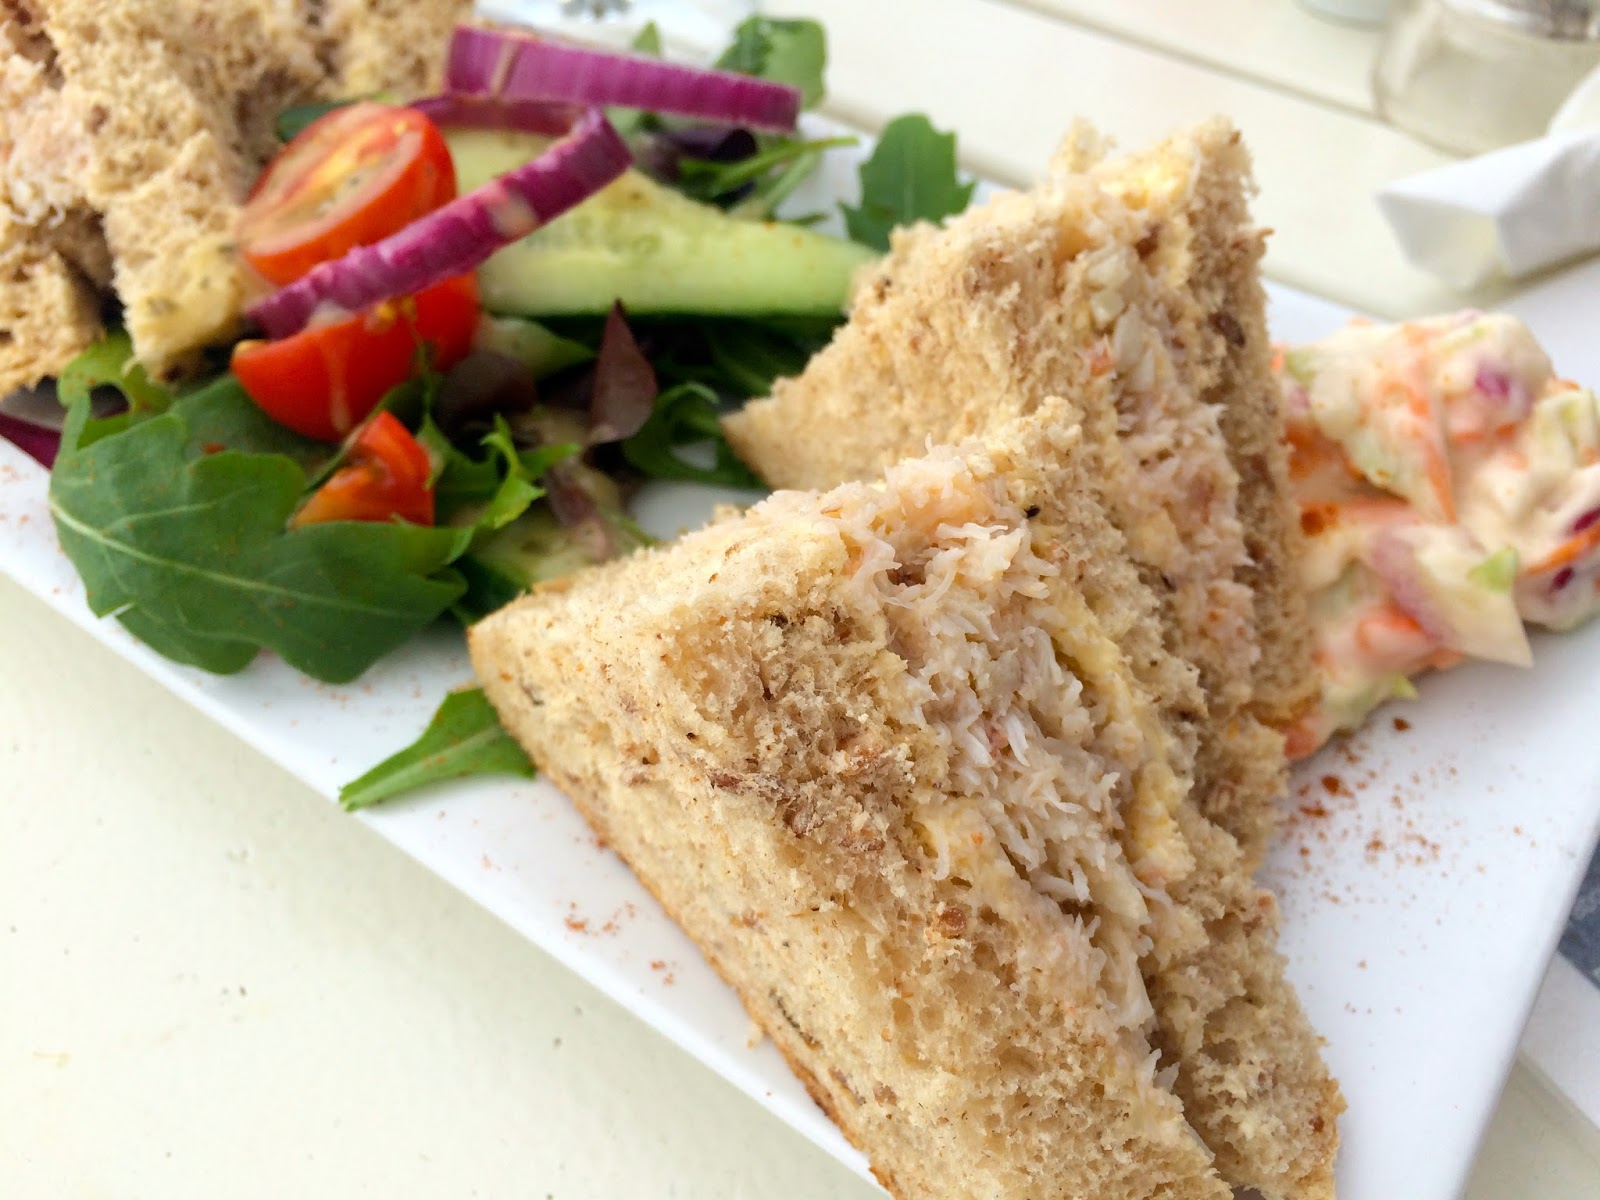 Beachcomber Cafe Praa Sands, food bloggers UK, travel bloggers UK, places to eat Marazion